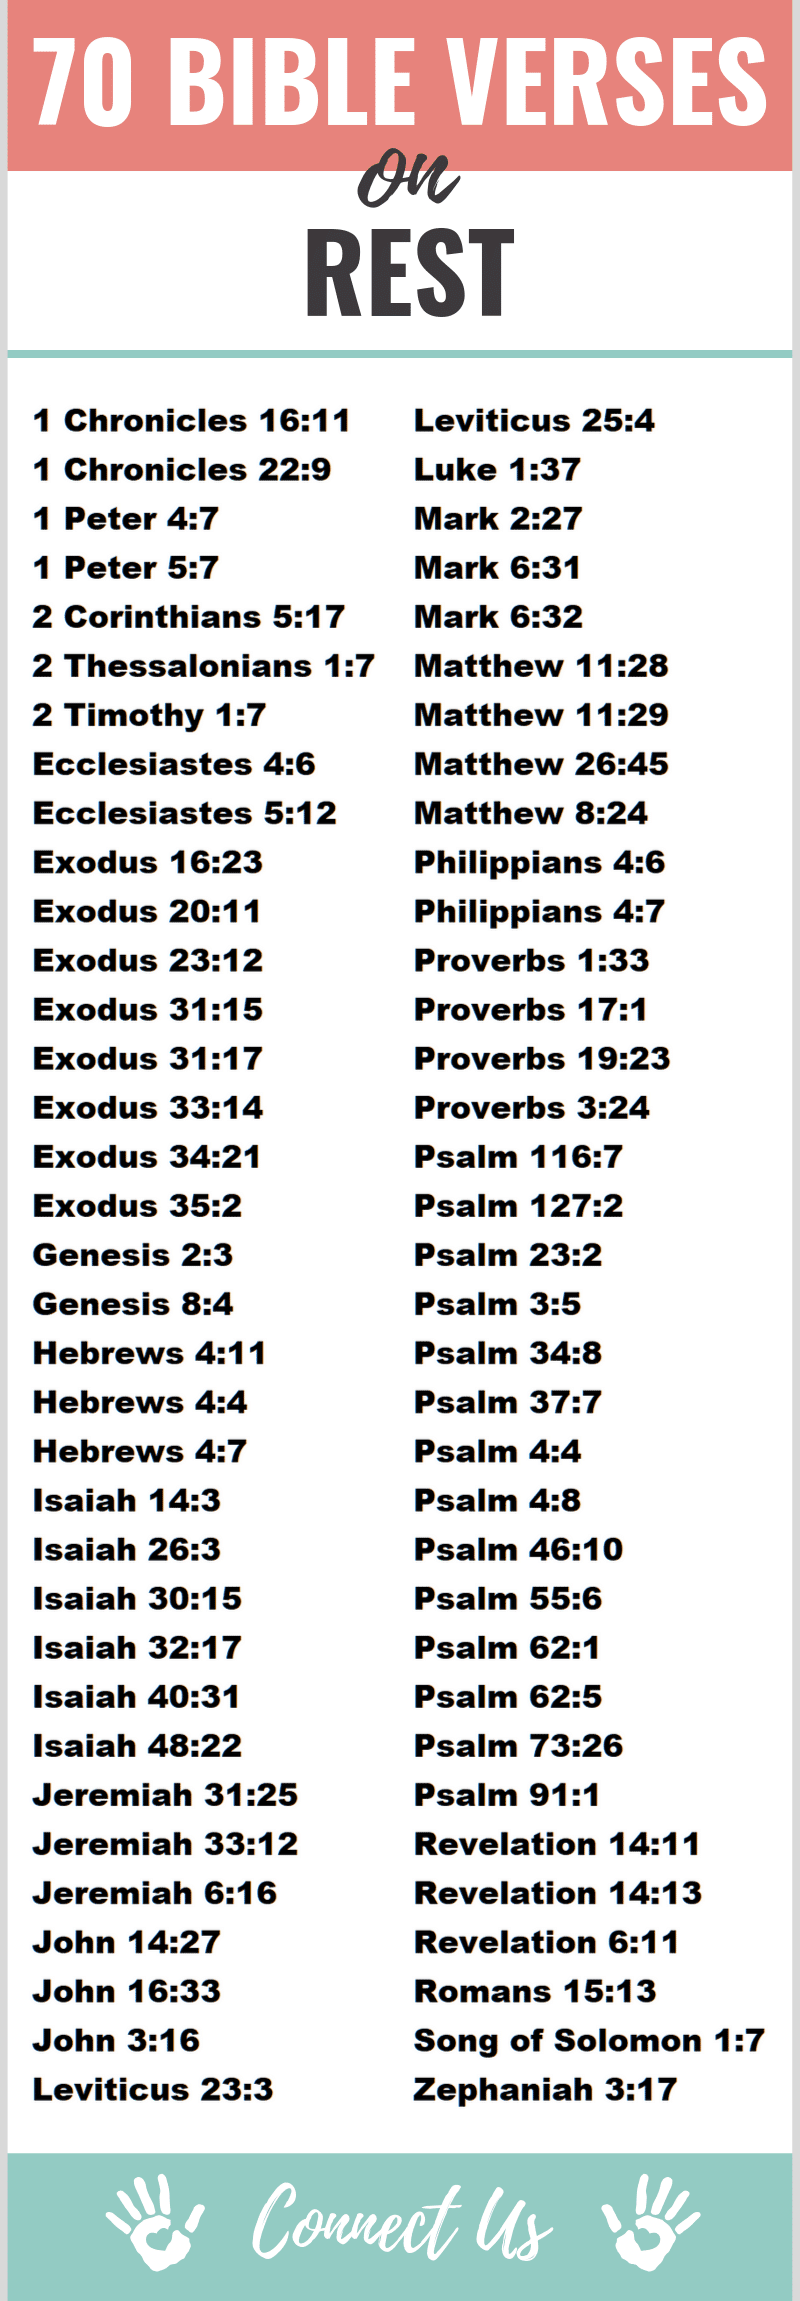 Bible Verses on Rest